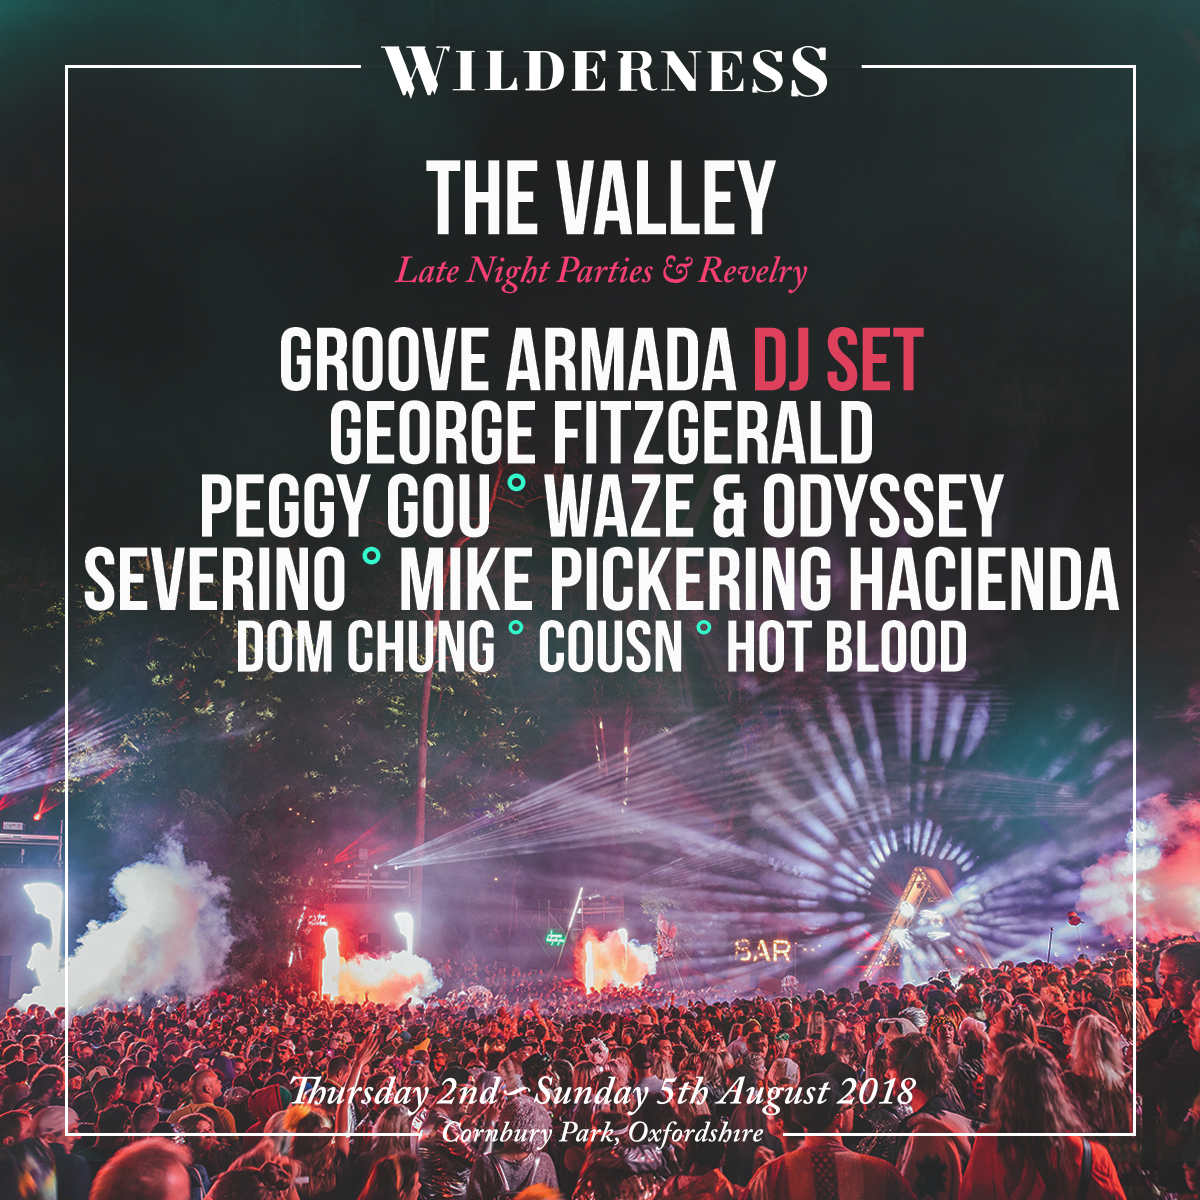 Wilderness Festival The Valley Line-up